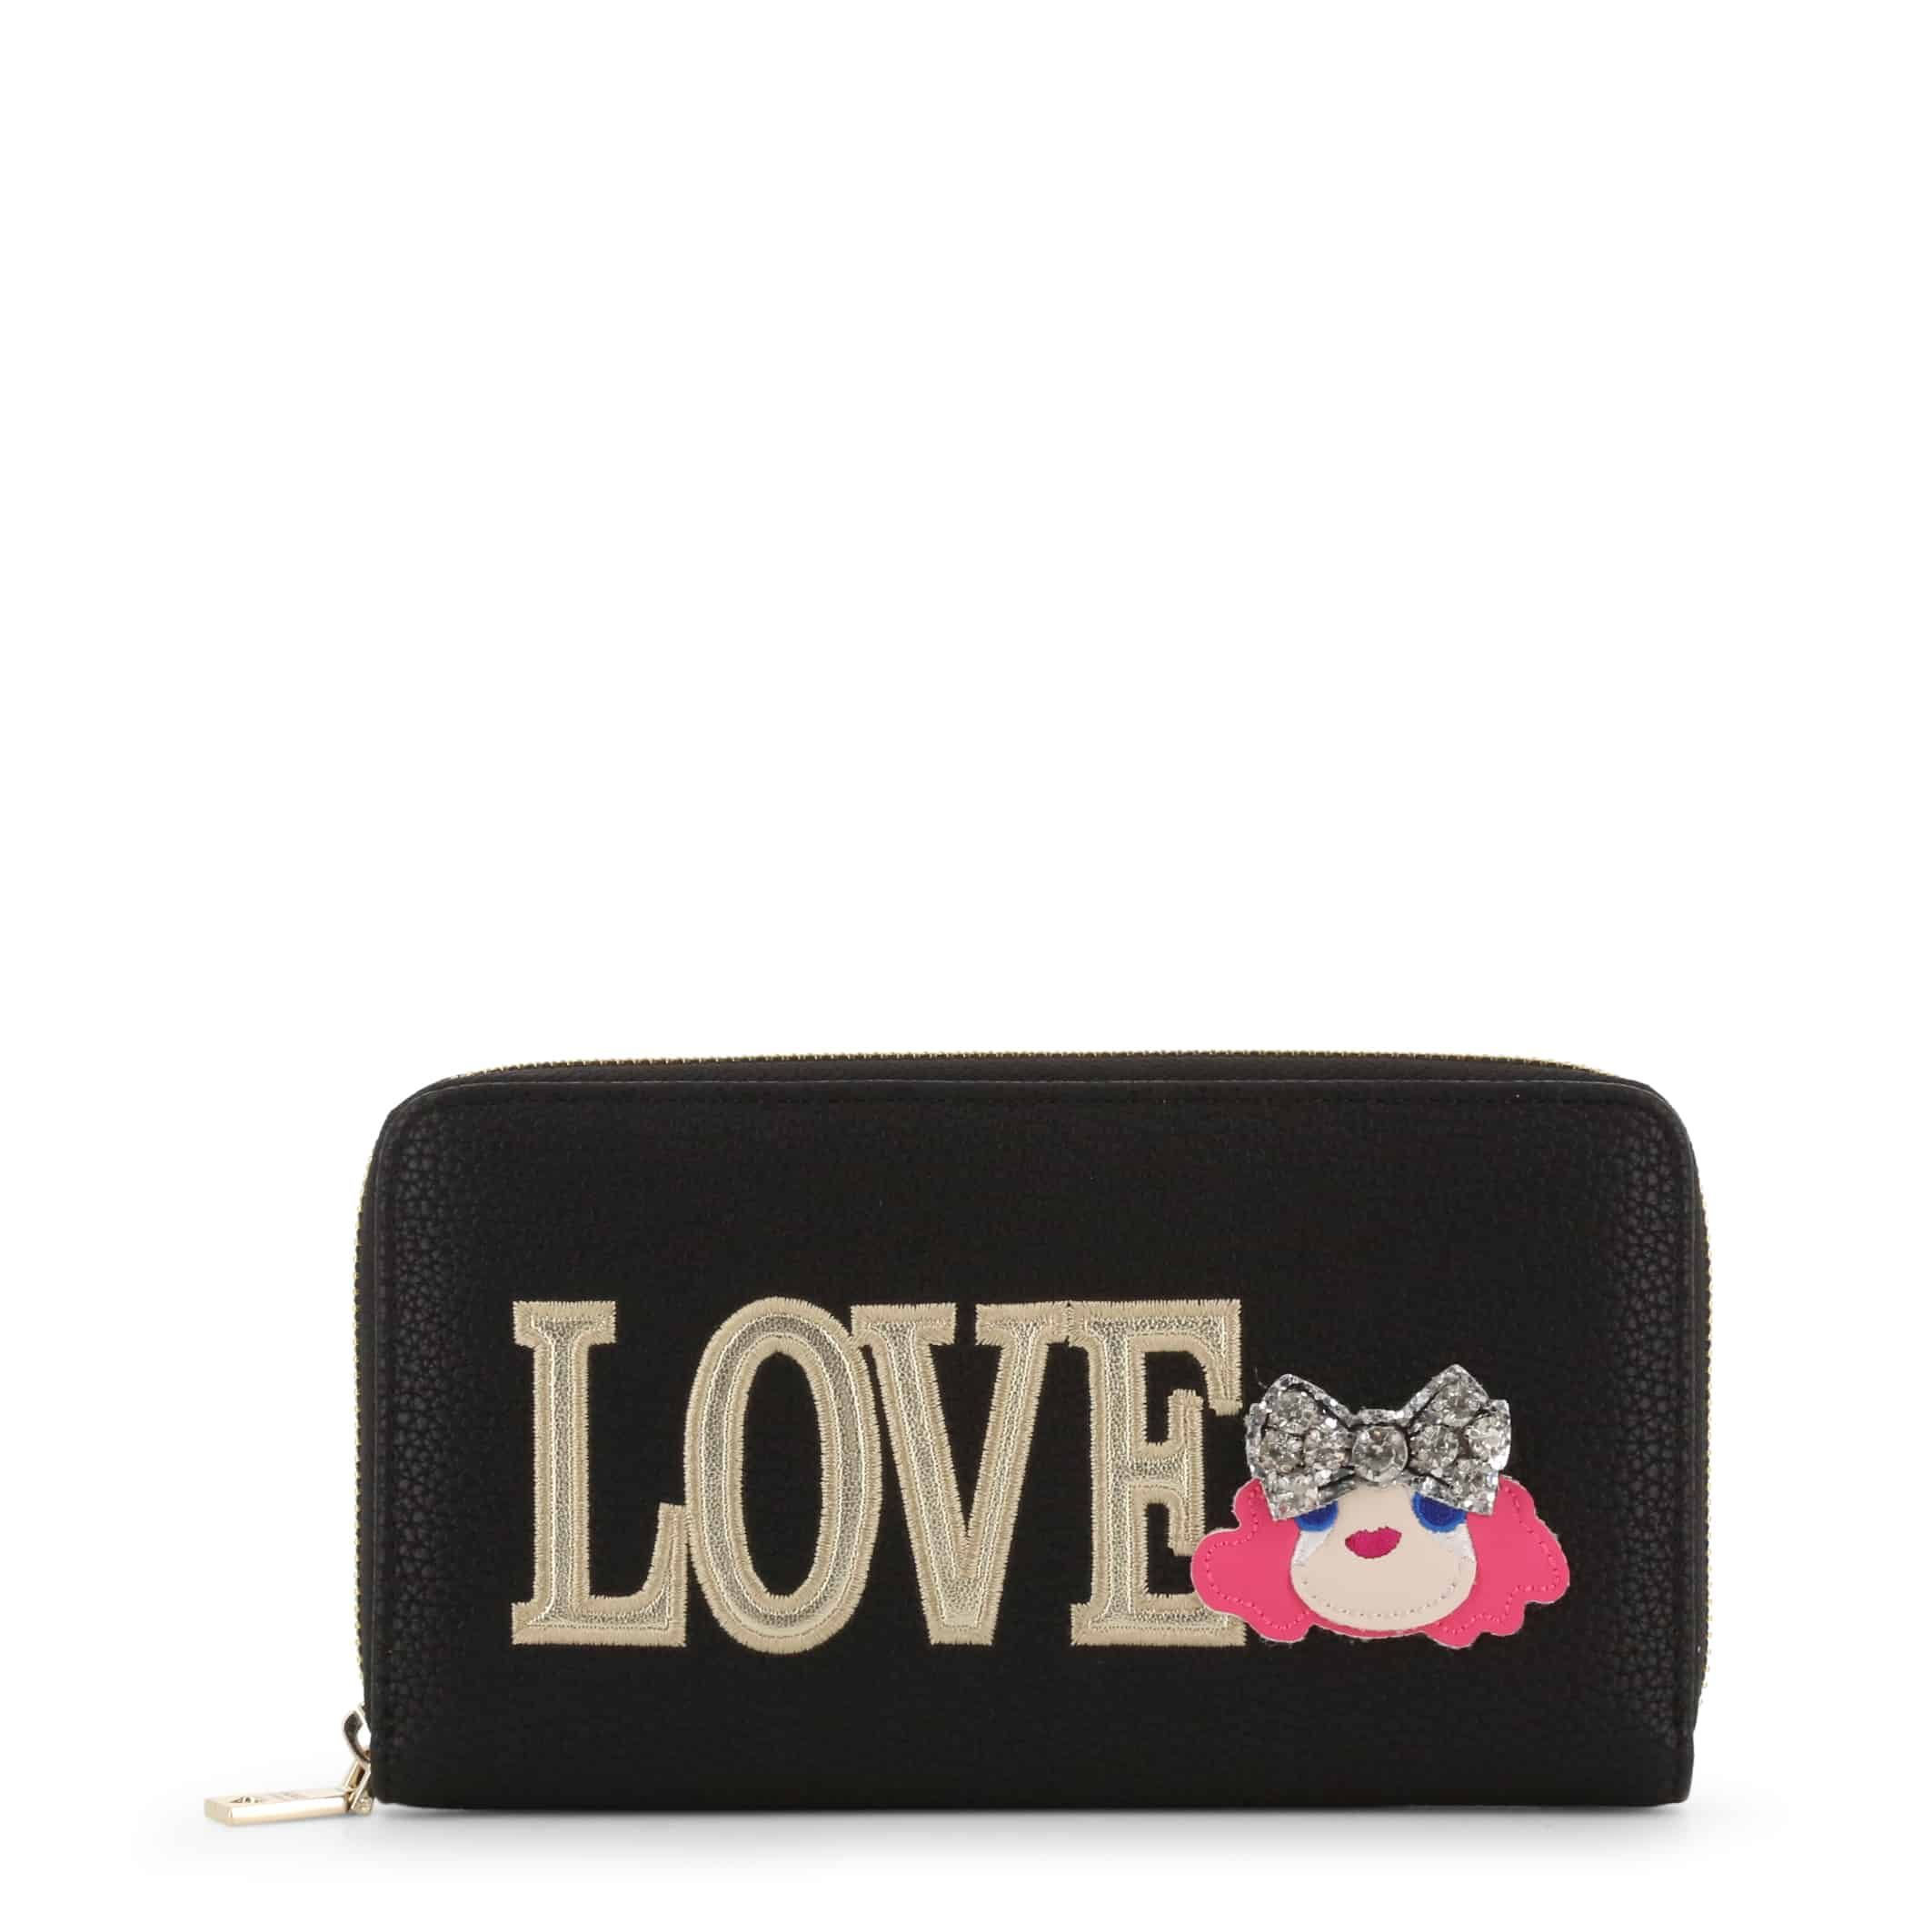 Cabas Love Moschino – JC4290PP07KM